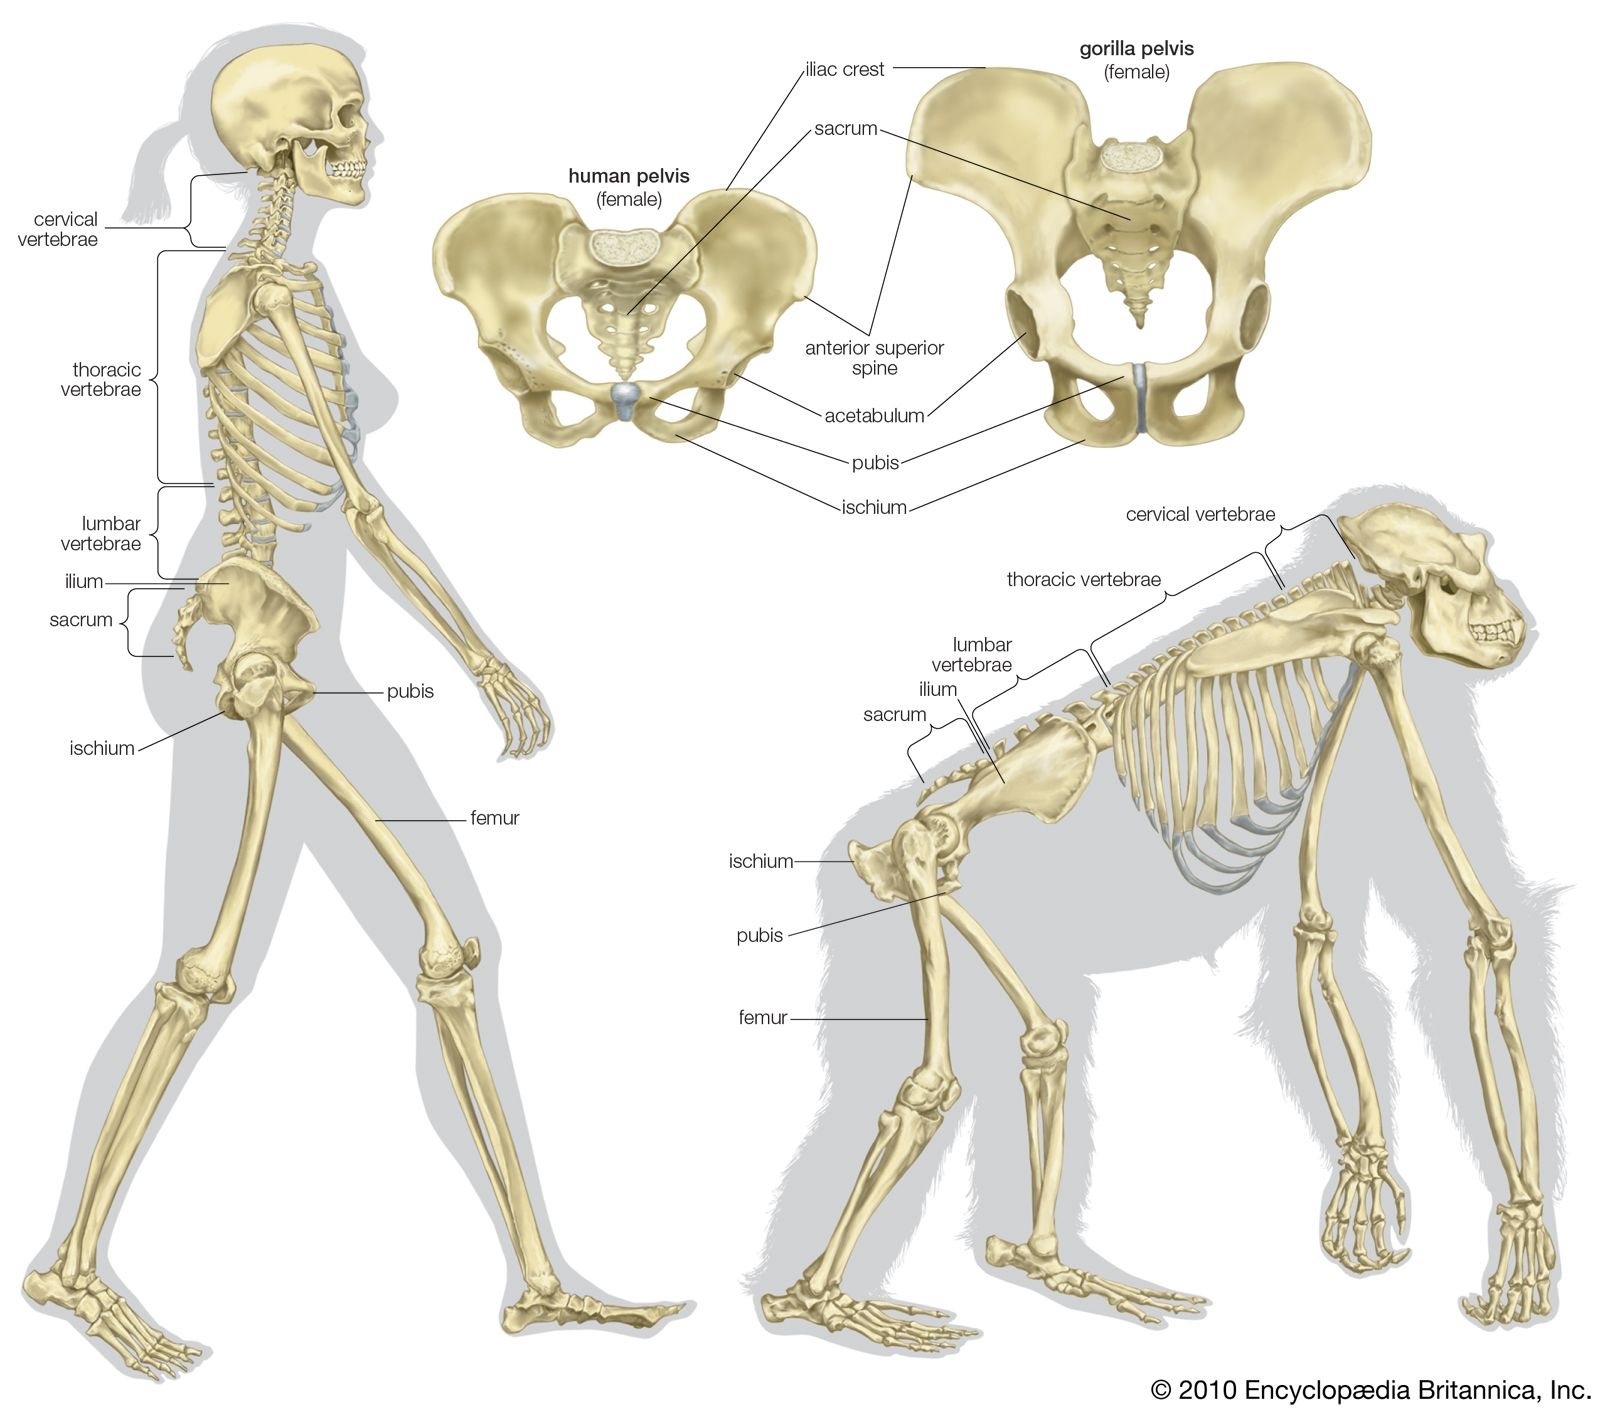 Gorilla Locomotion And Skeletal Structure